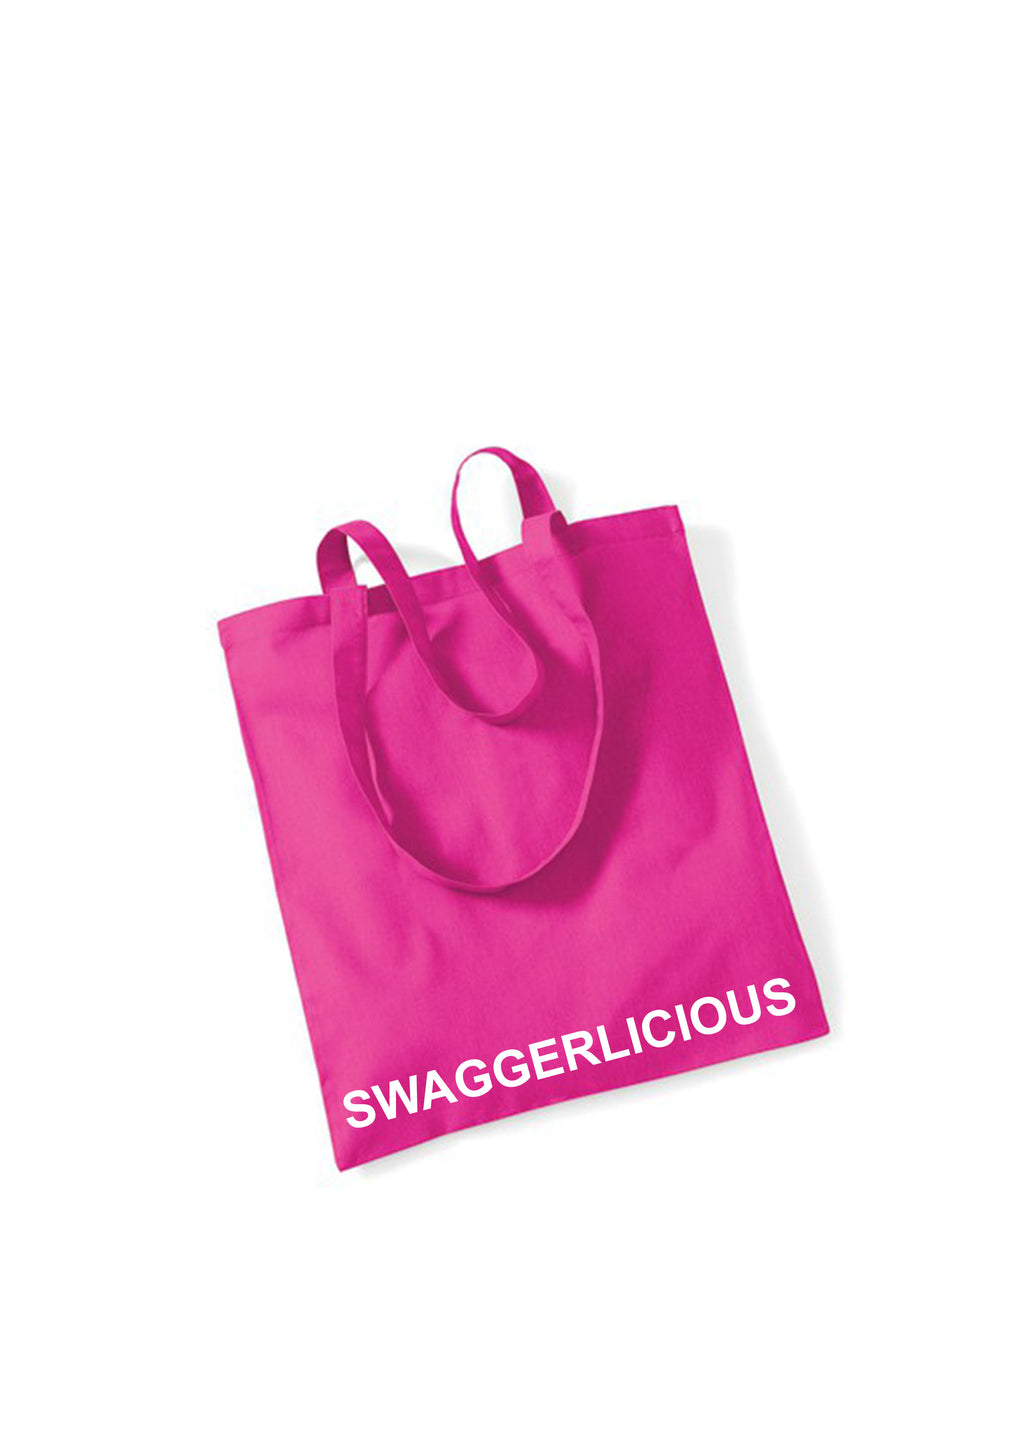 FUCHSIA SWAGGERLICIOUS TOTE BAG - swaggerlicious-clothing.com